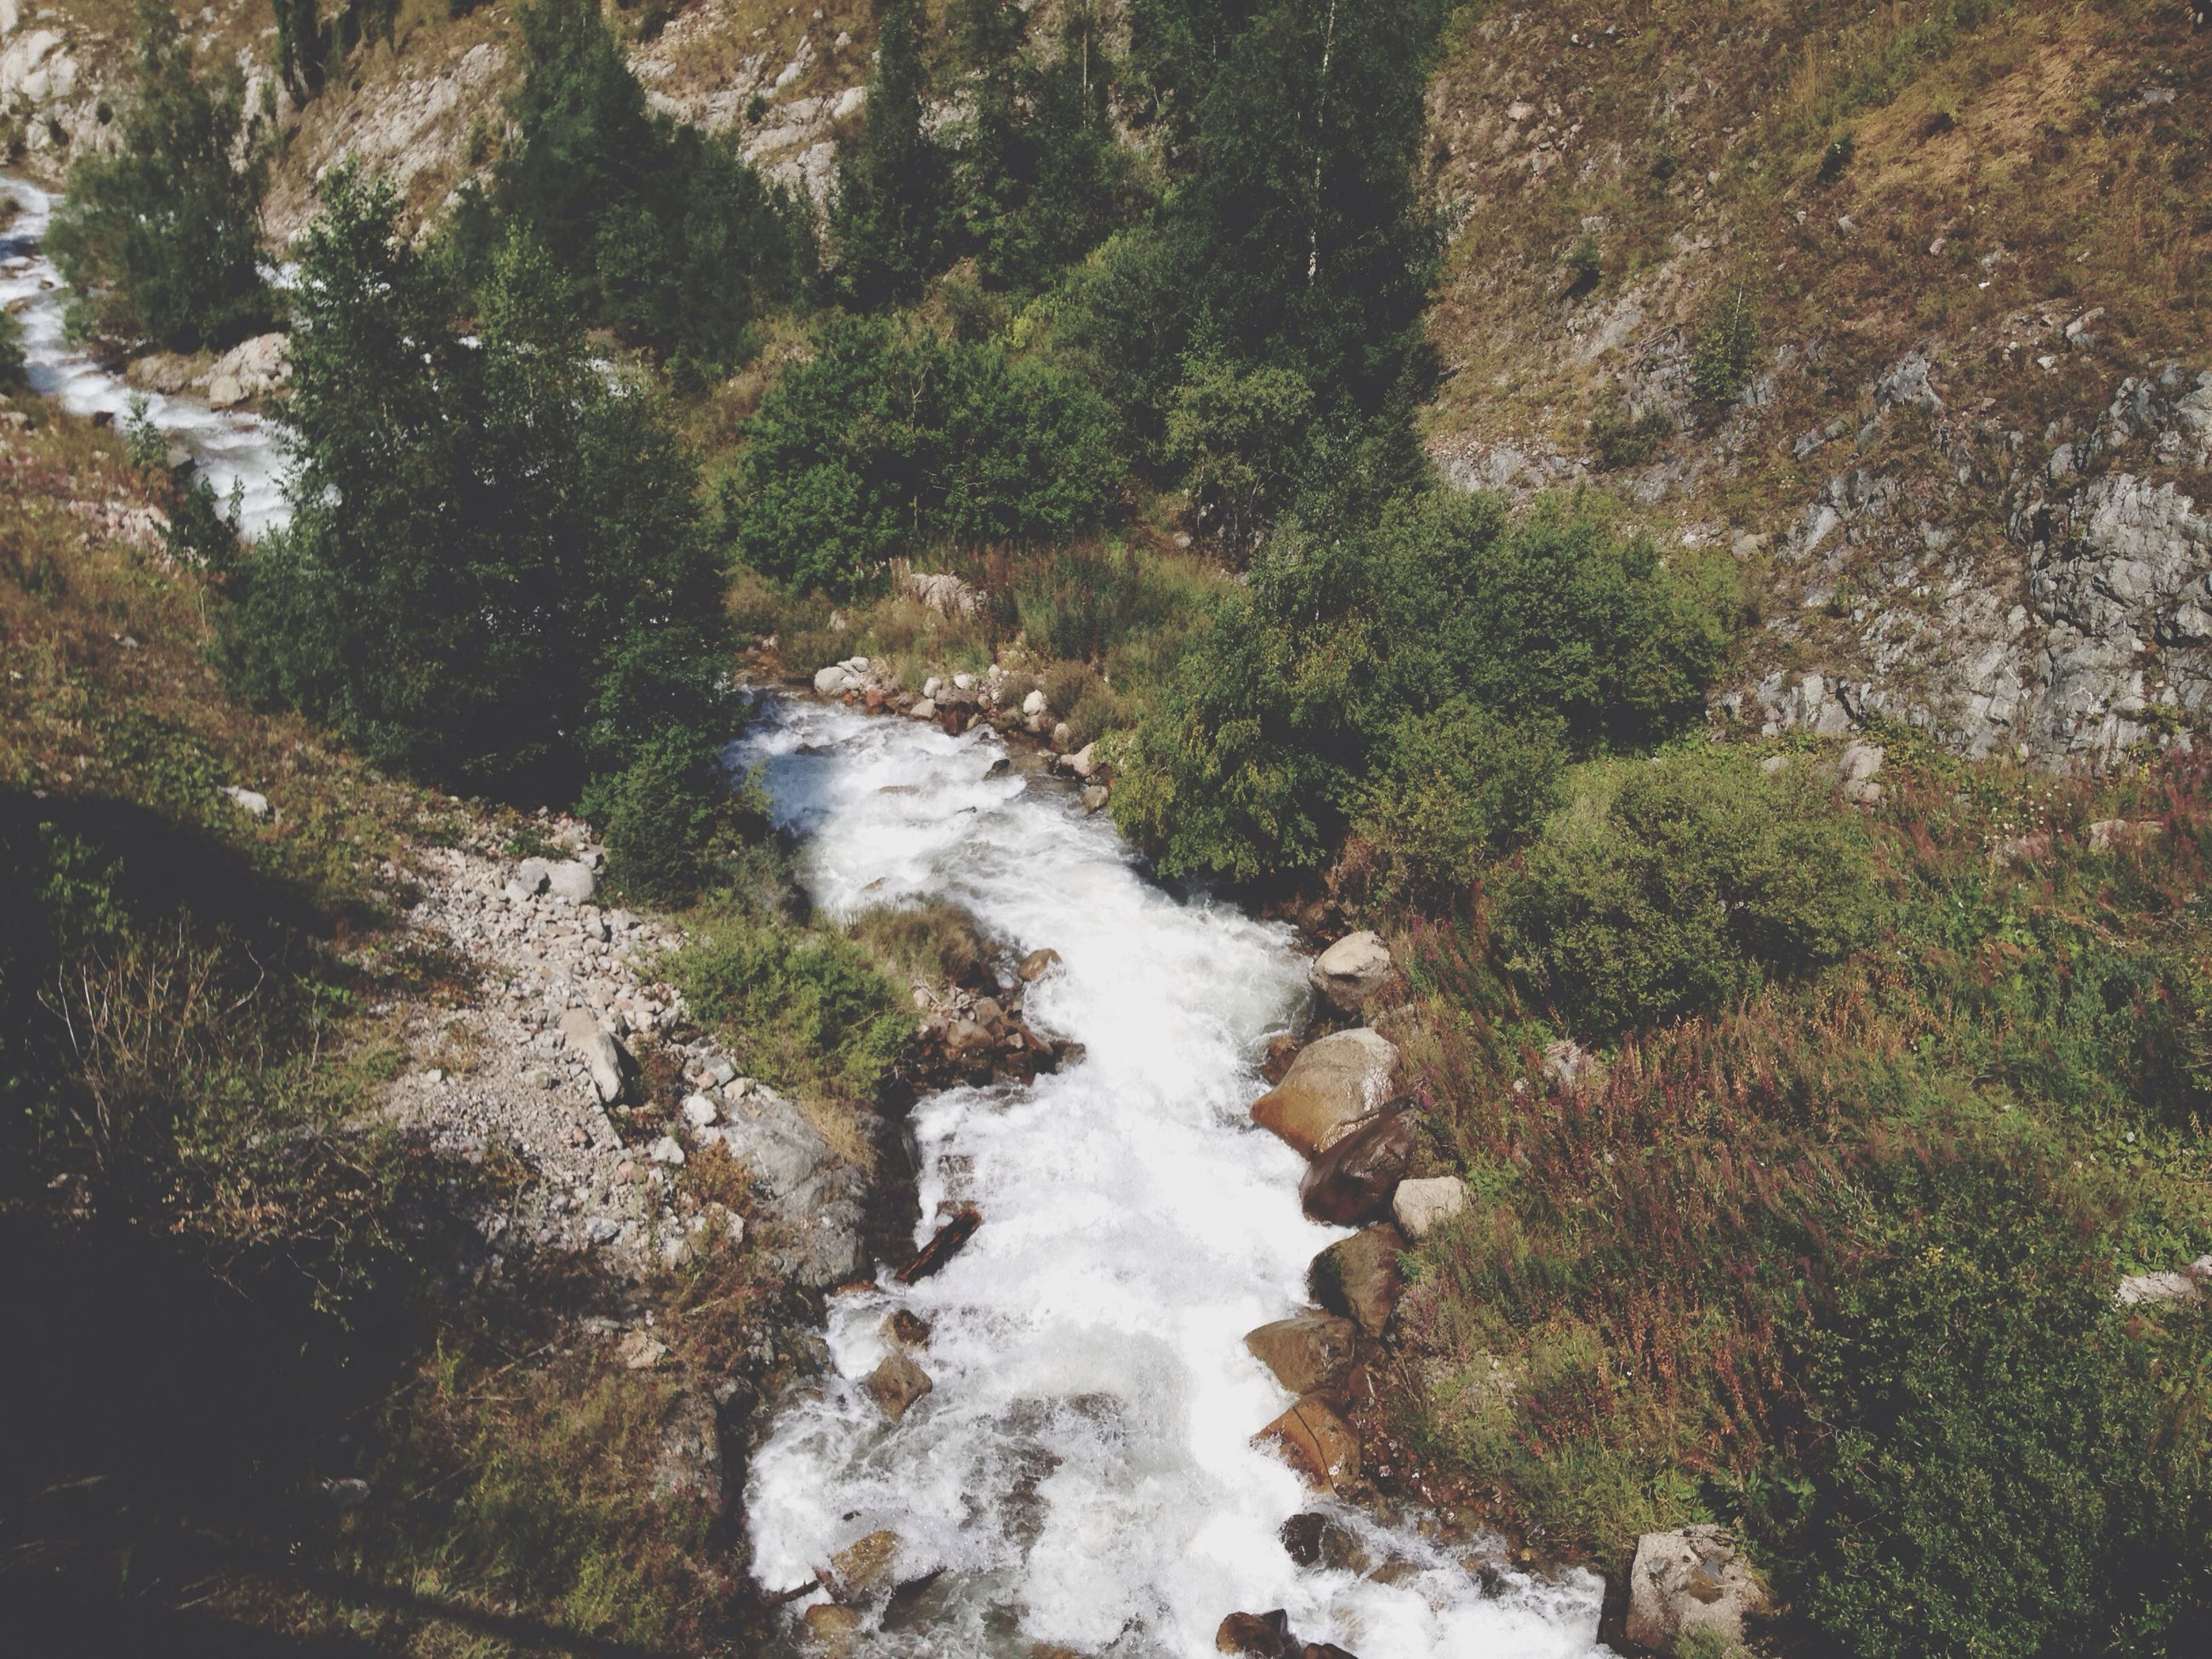 water, stream, flowing water, waterfall, flowing, nature, tree, rock - object, beauty in nature, scenics, forest, motion, tranquility, high angle view, tranquil scene, river, plant, day, growth, outdoors